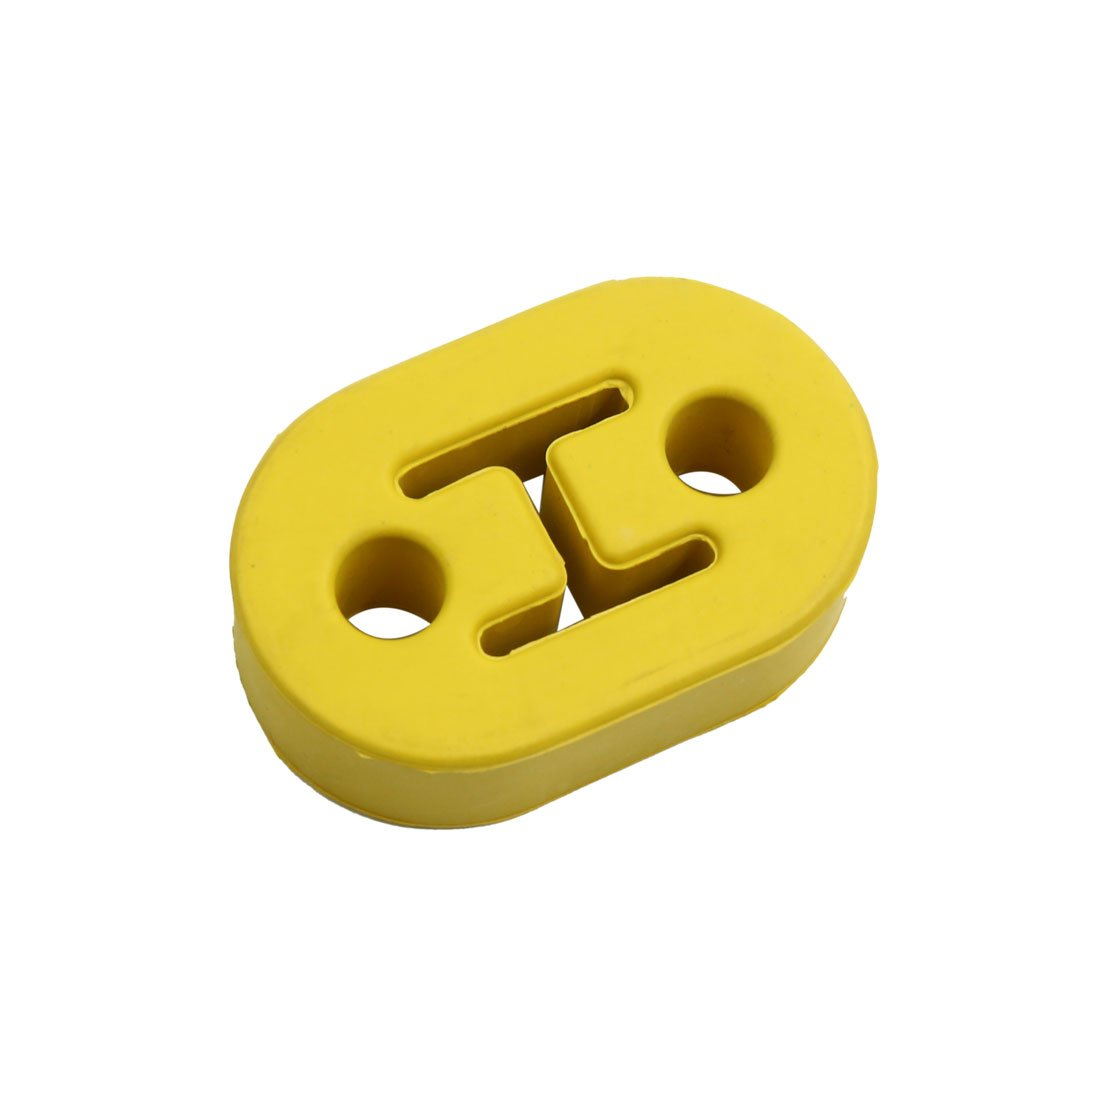 uxcell Universal Yellow Rubber Car Exhaust Pipe Tip Mount Hanger Bracket 12mm 2 Hole